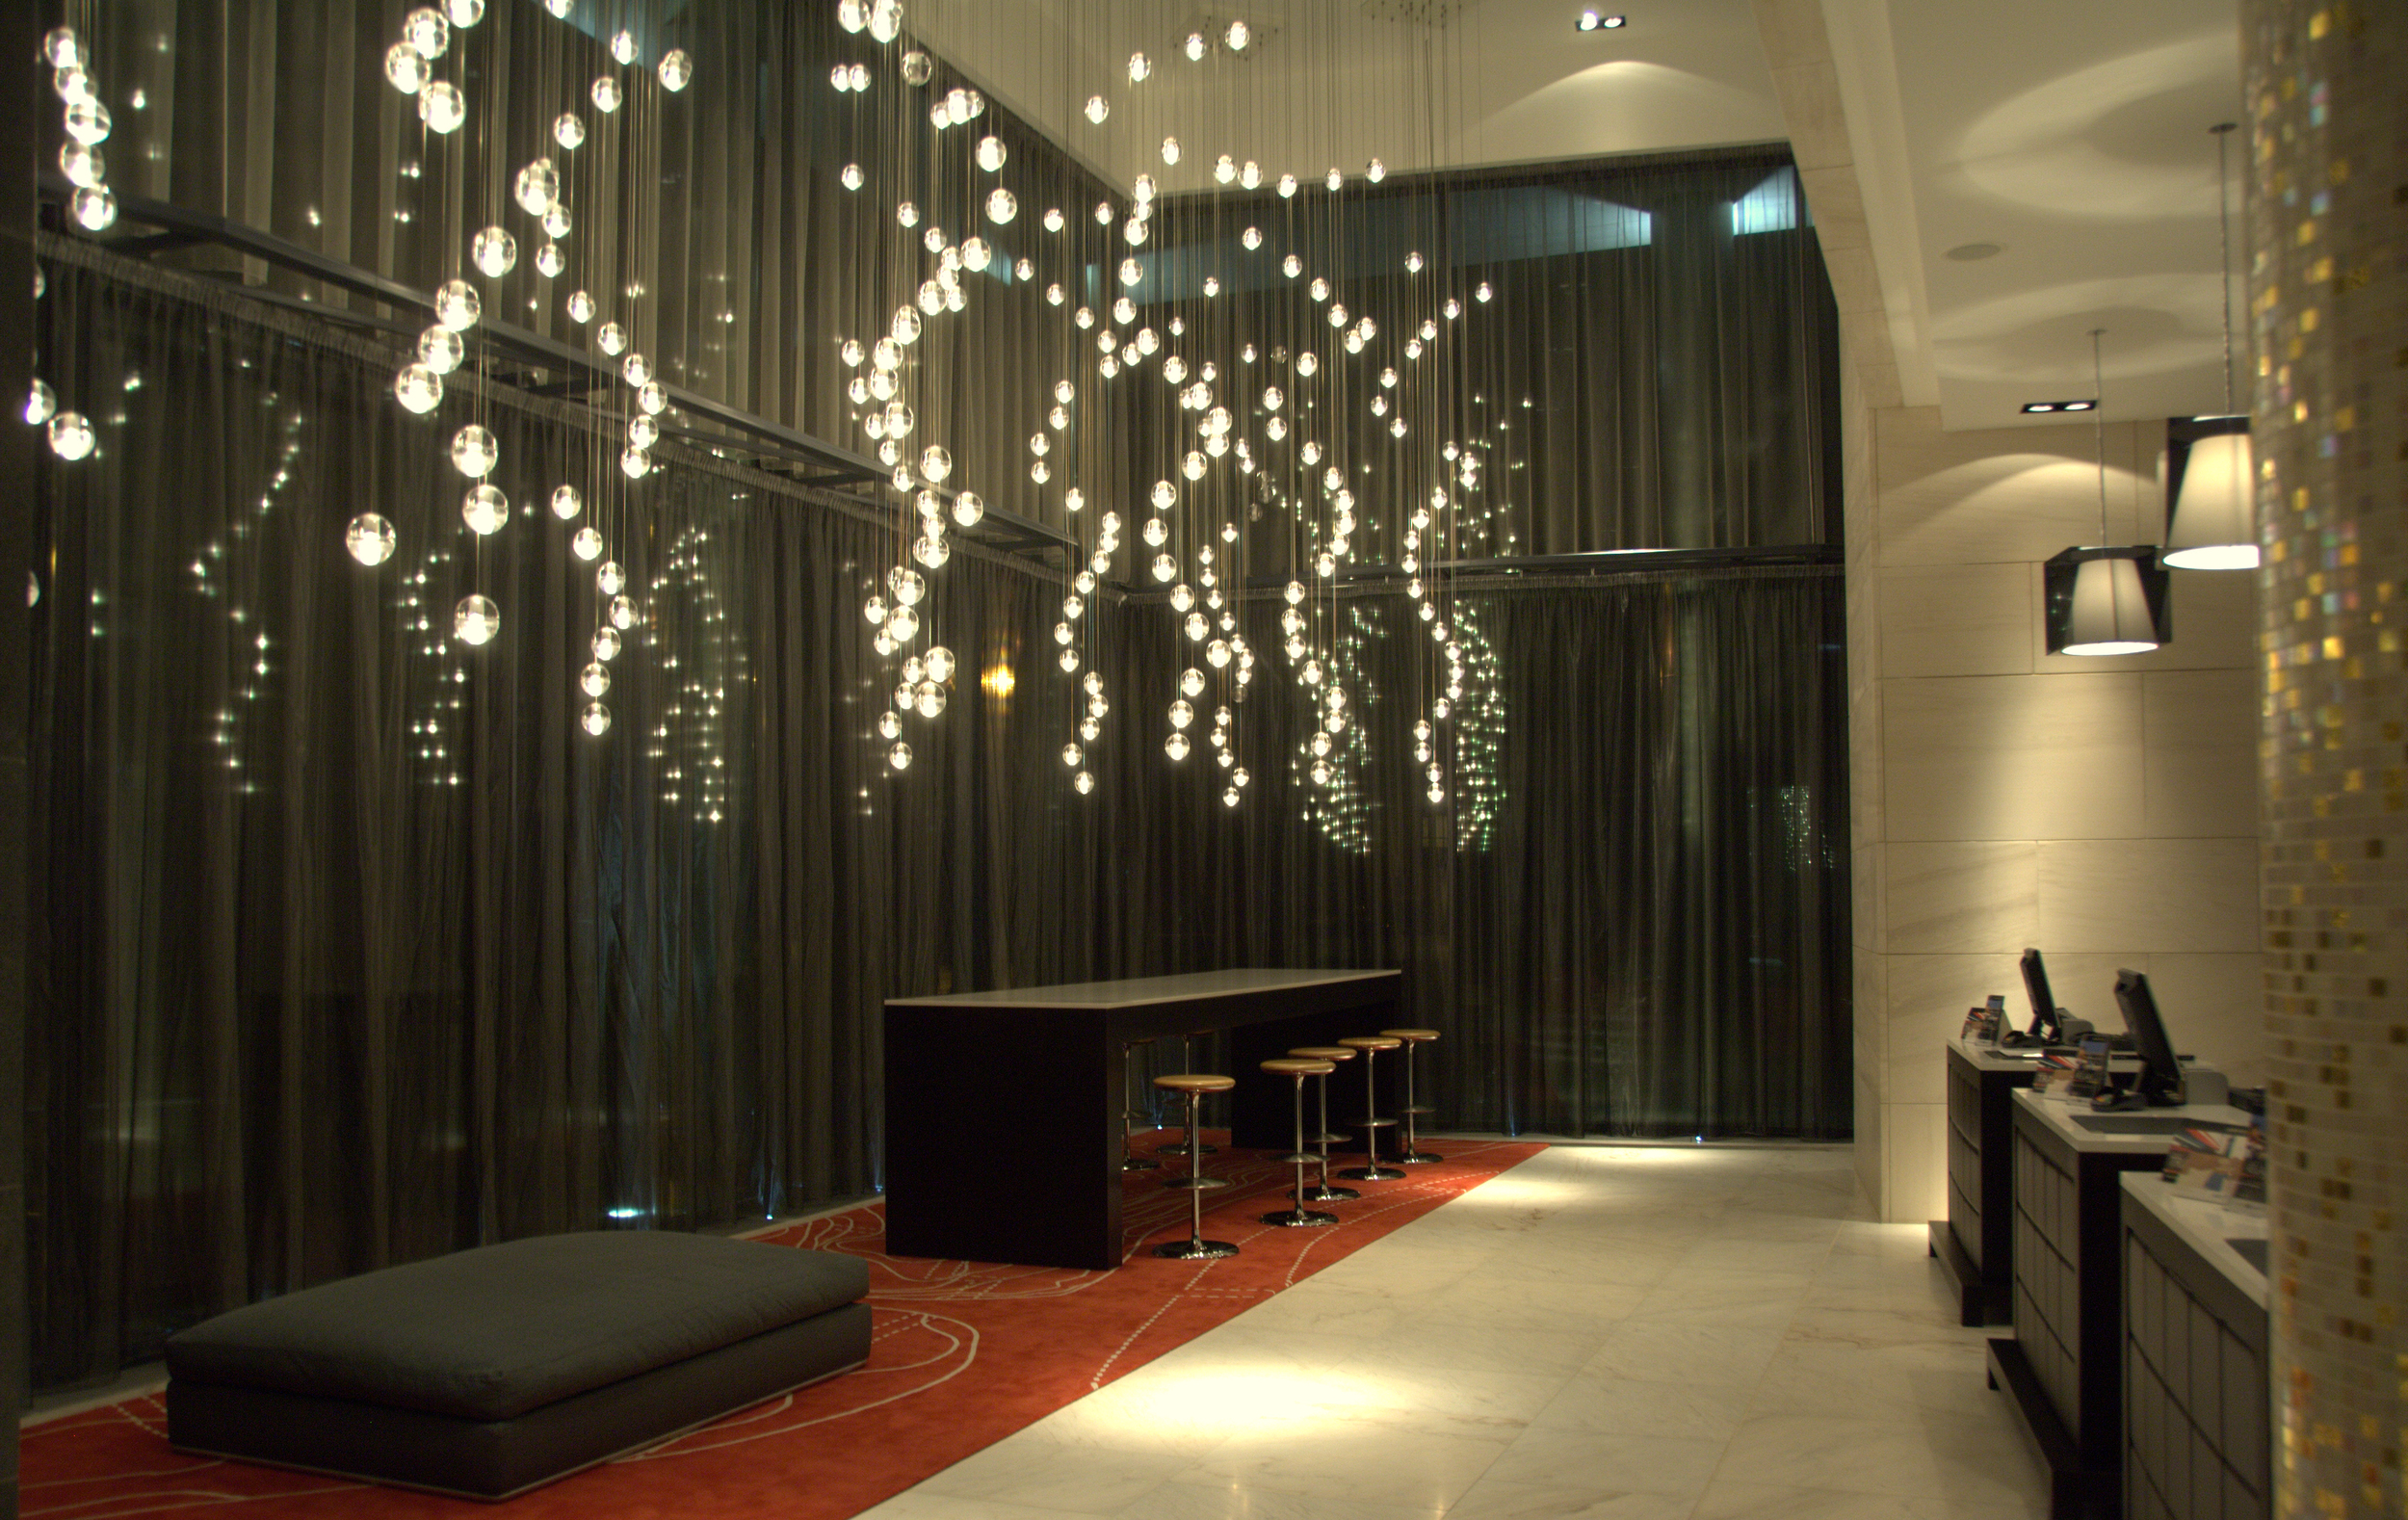 Radisson SAS Hotel Dublin; feature pendant installation